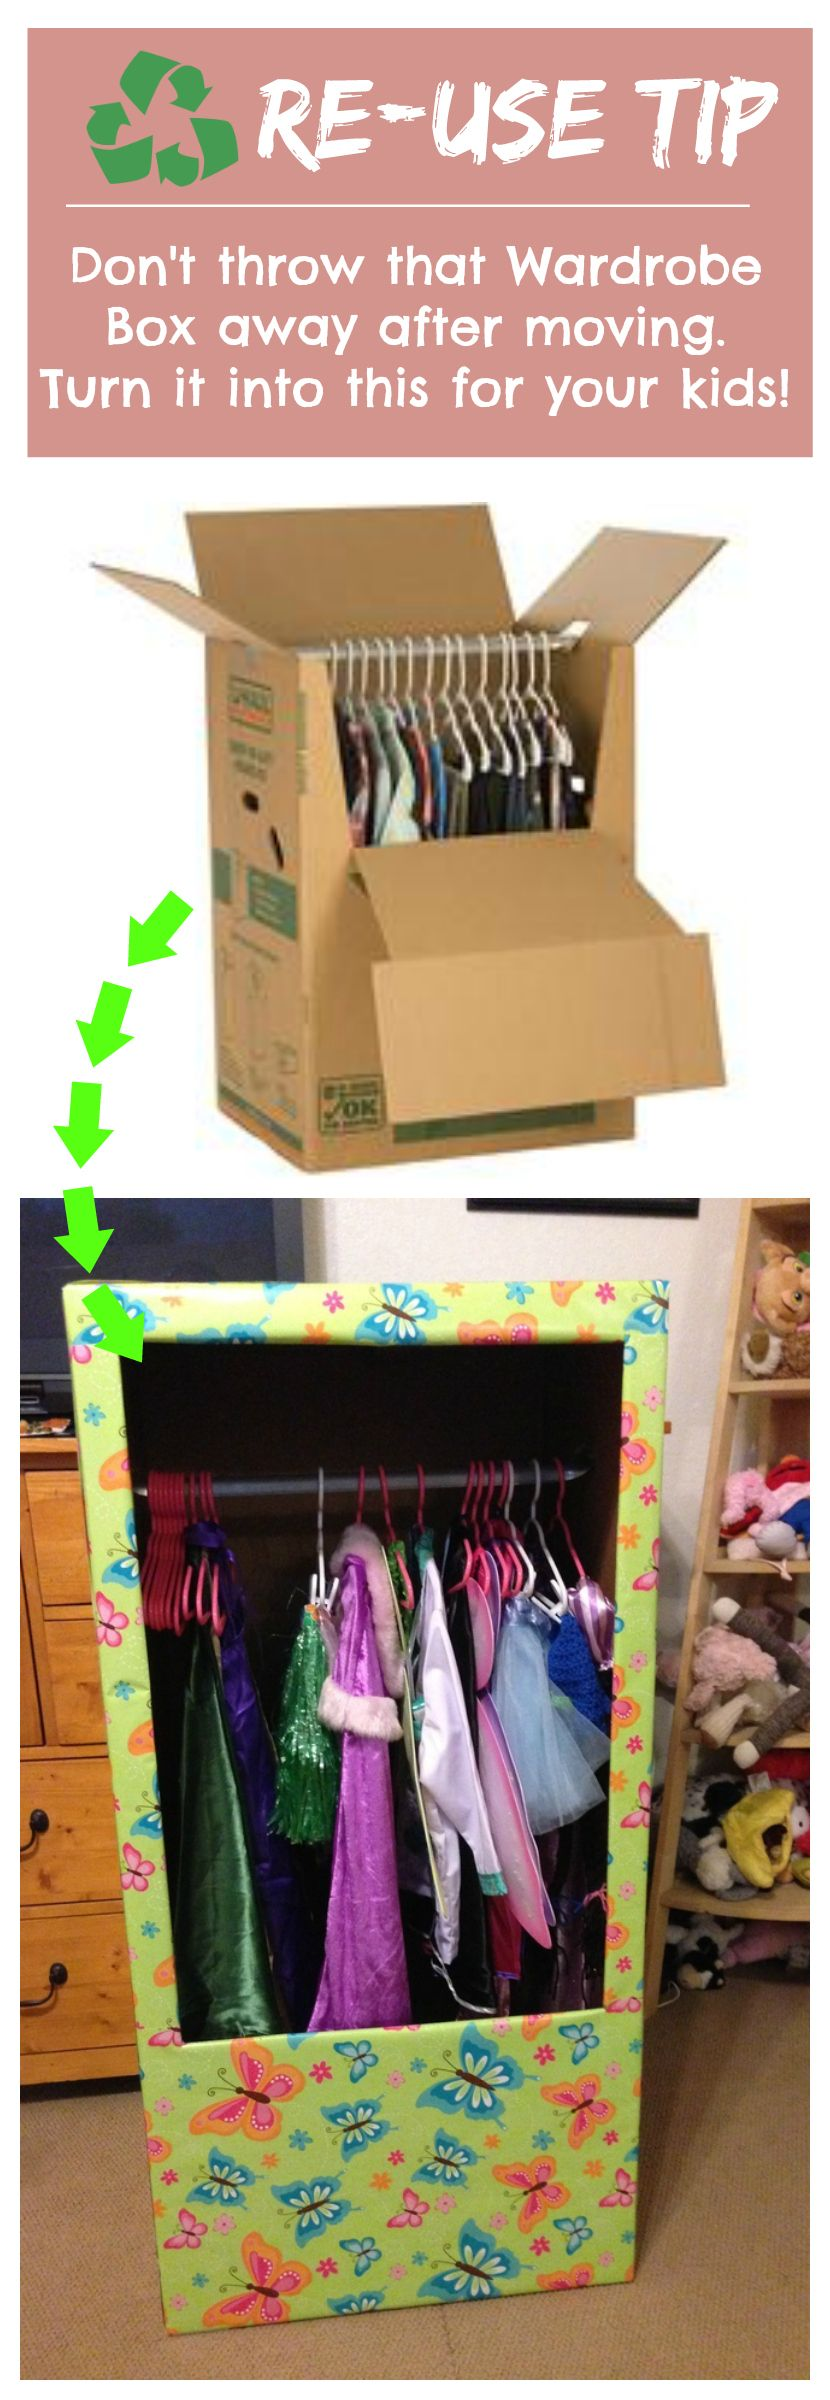 your closet wardrobe boxes scene sg how moving to organise fashion